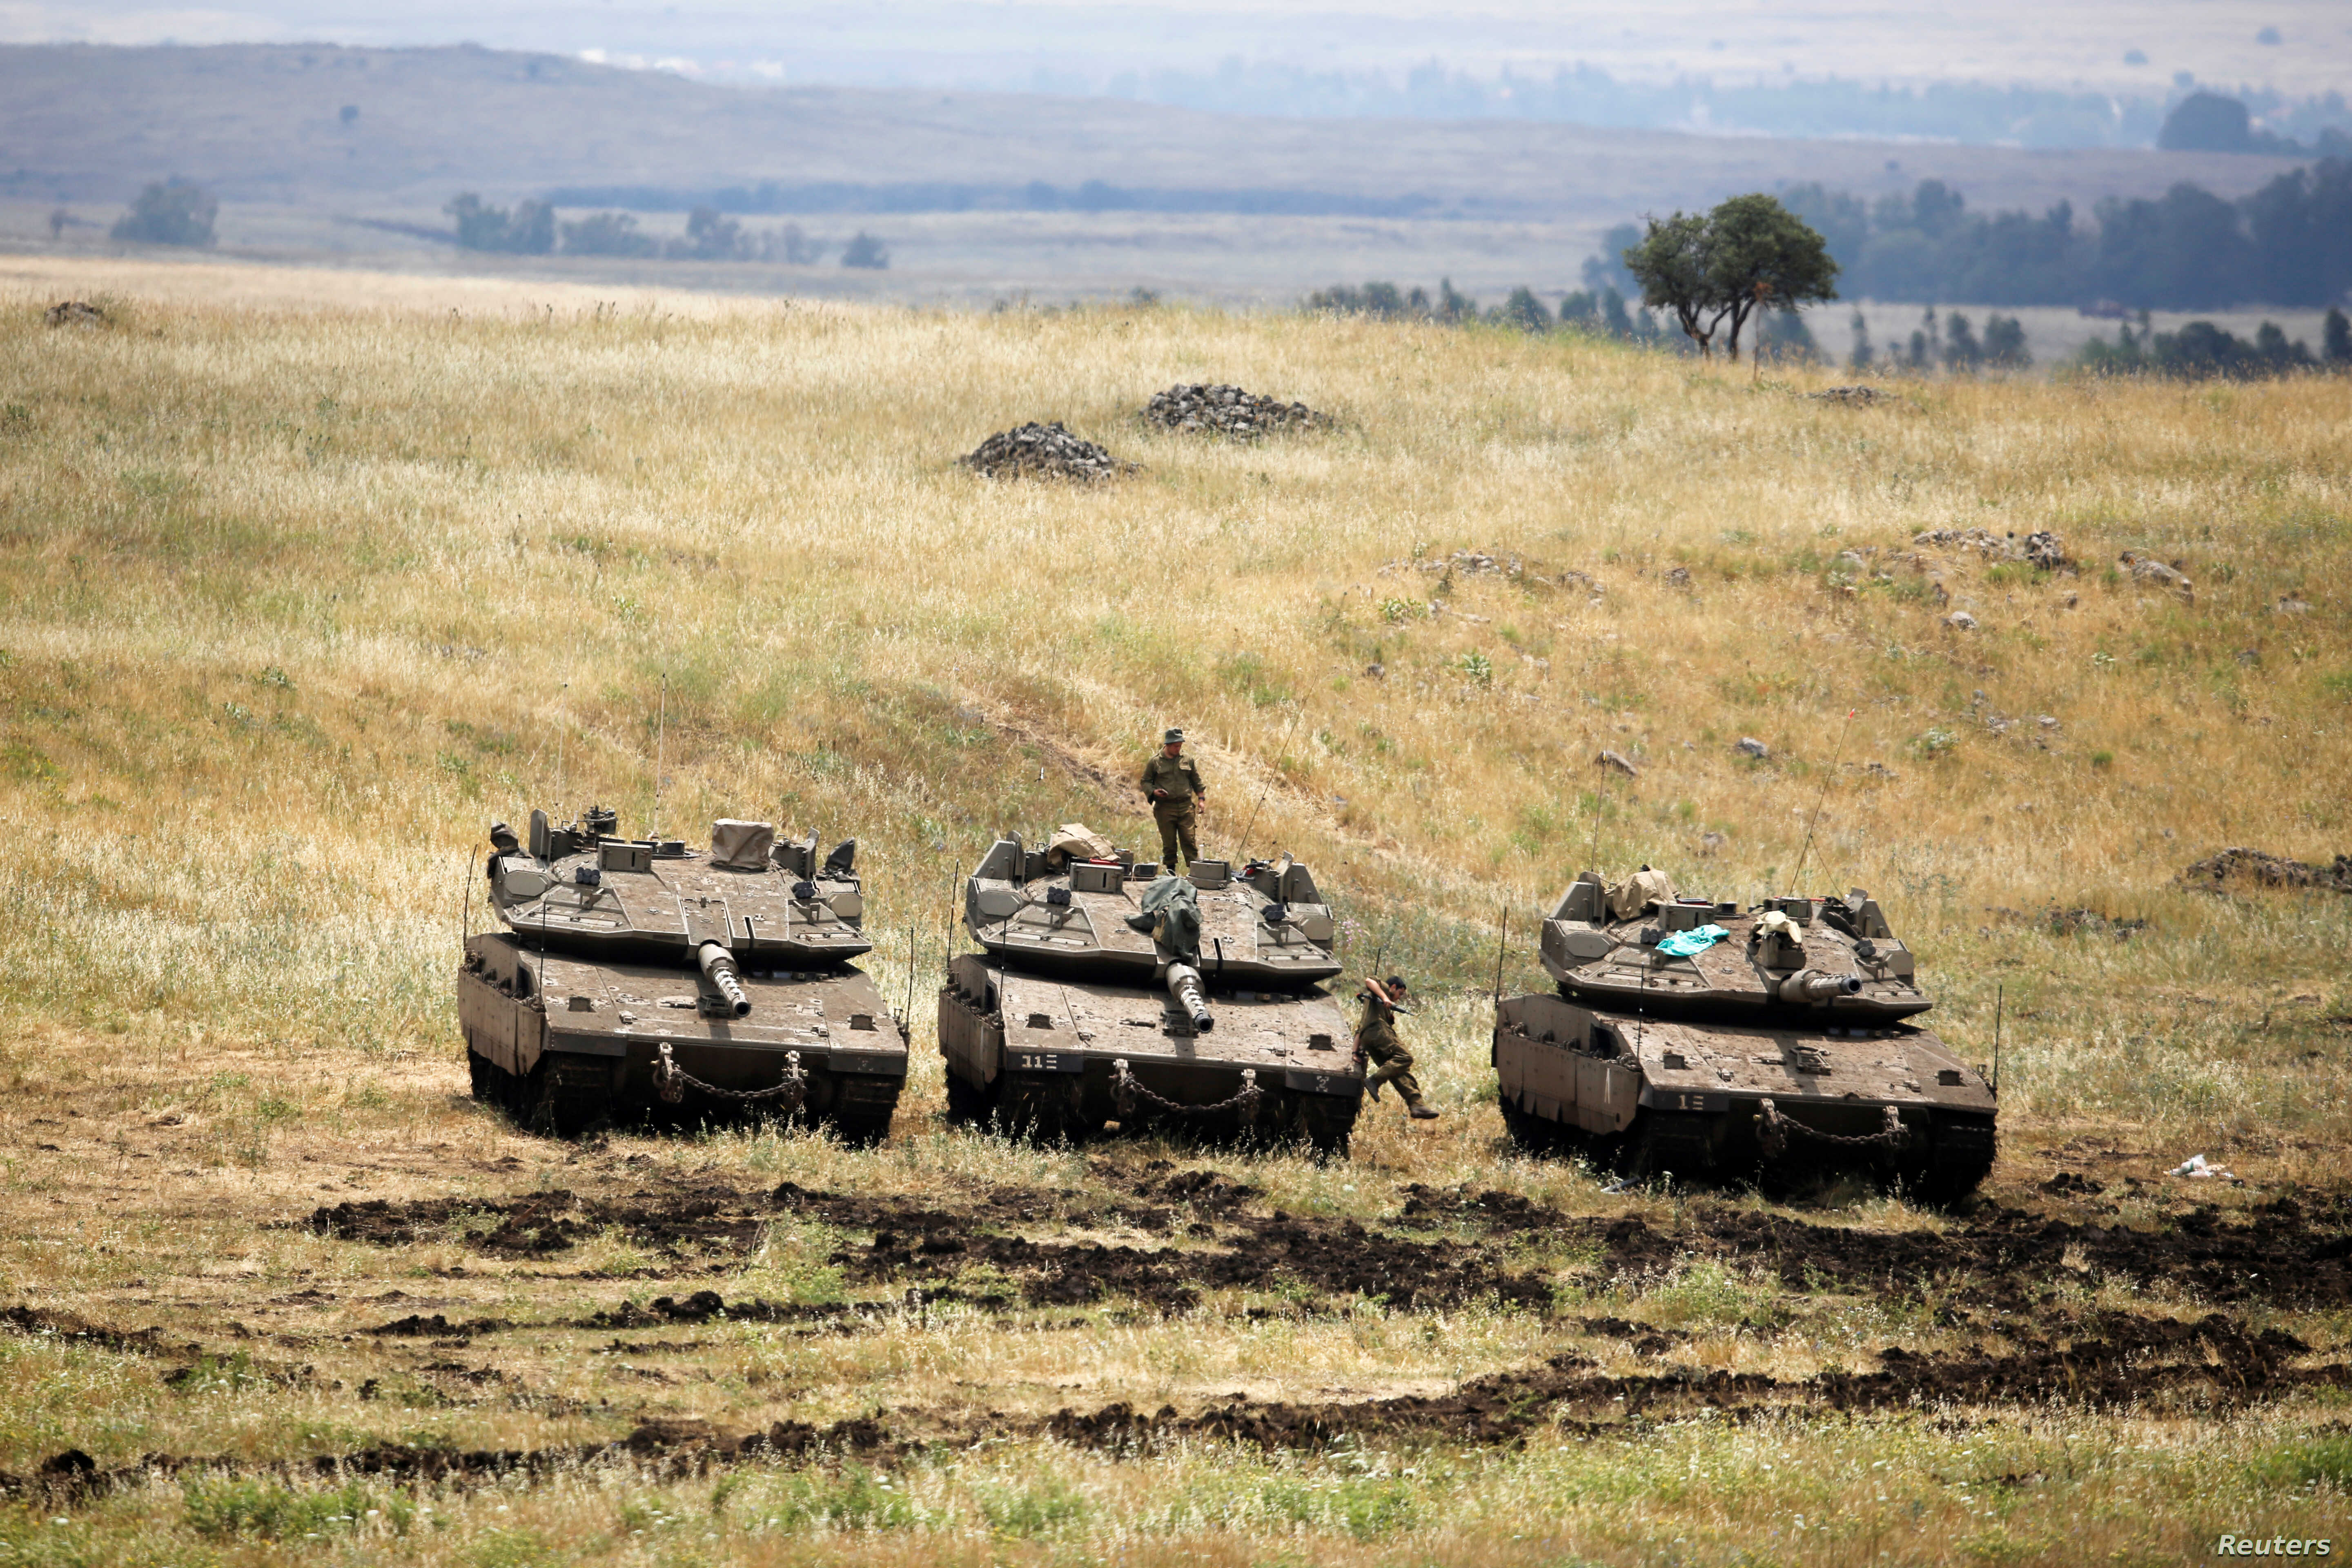 An Israeli soldier stands on a tank as another jumps off it near the Israeli side of the border with Syria in the Israeli-occupied Golan Heights, Israel, May 9, 2018.